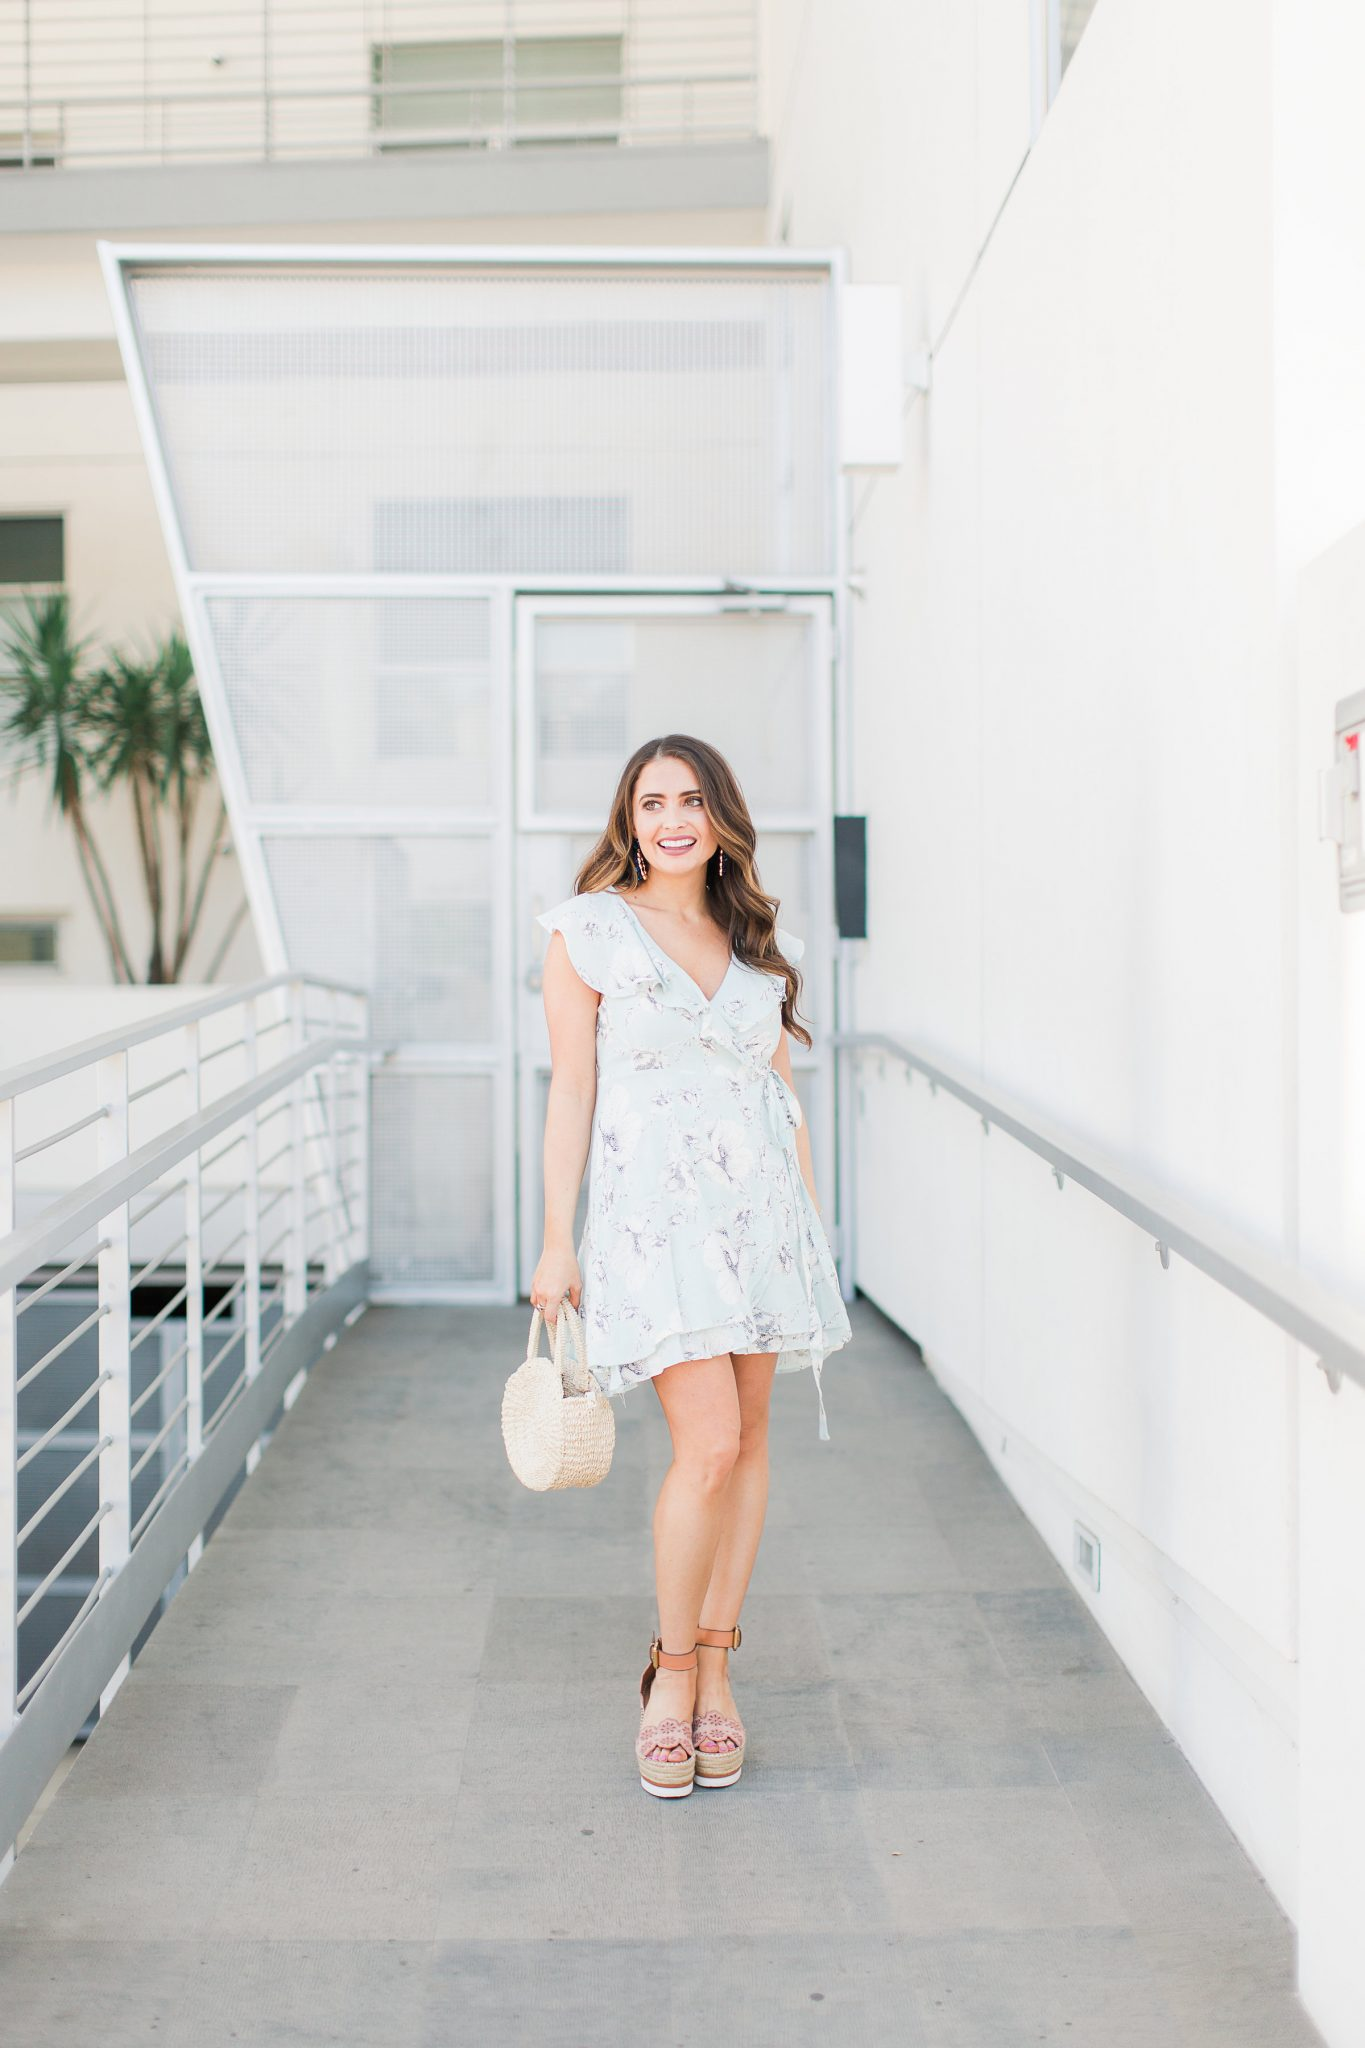 Blue floral wrap dress with flutter sleeves - My Favorite Cute Easter Dresses by popular Orange County fashion blogger Maxie Elise